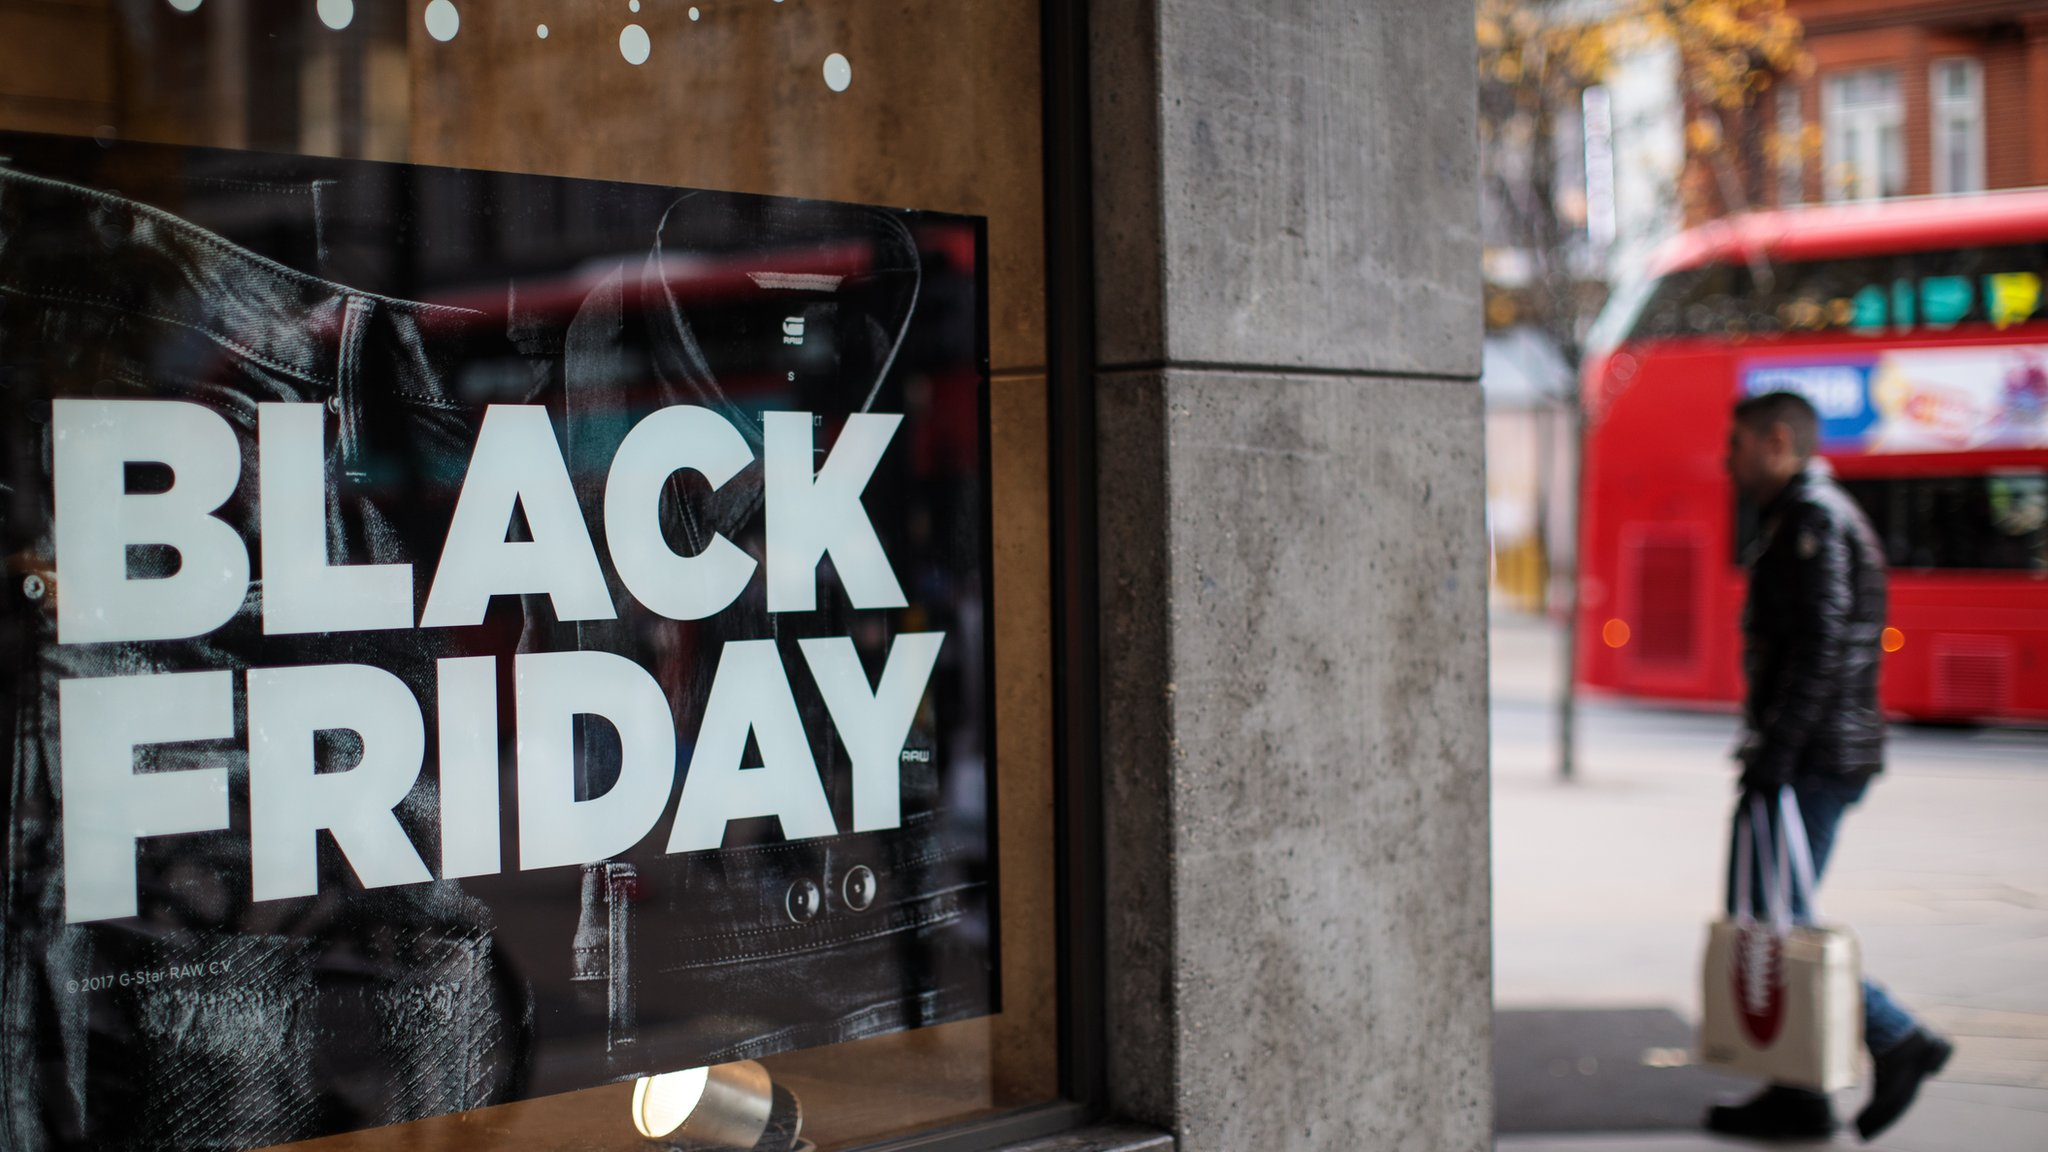 Black Friday sales bonanza set to hit a record